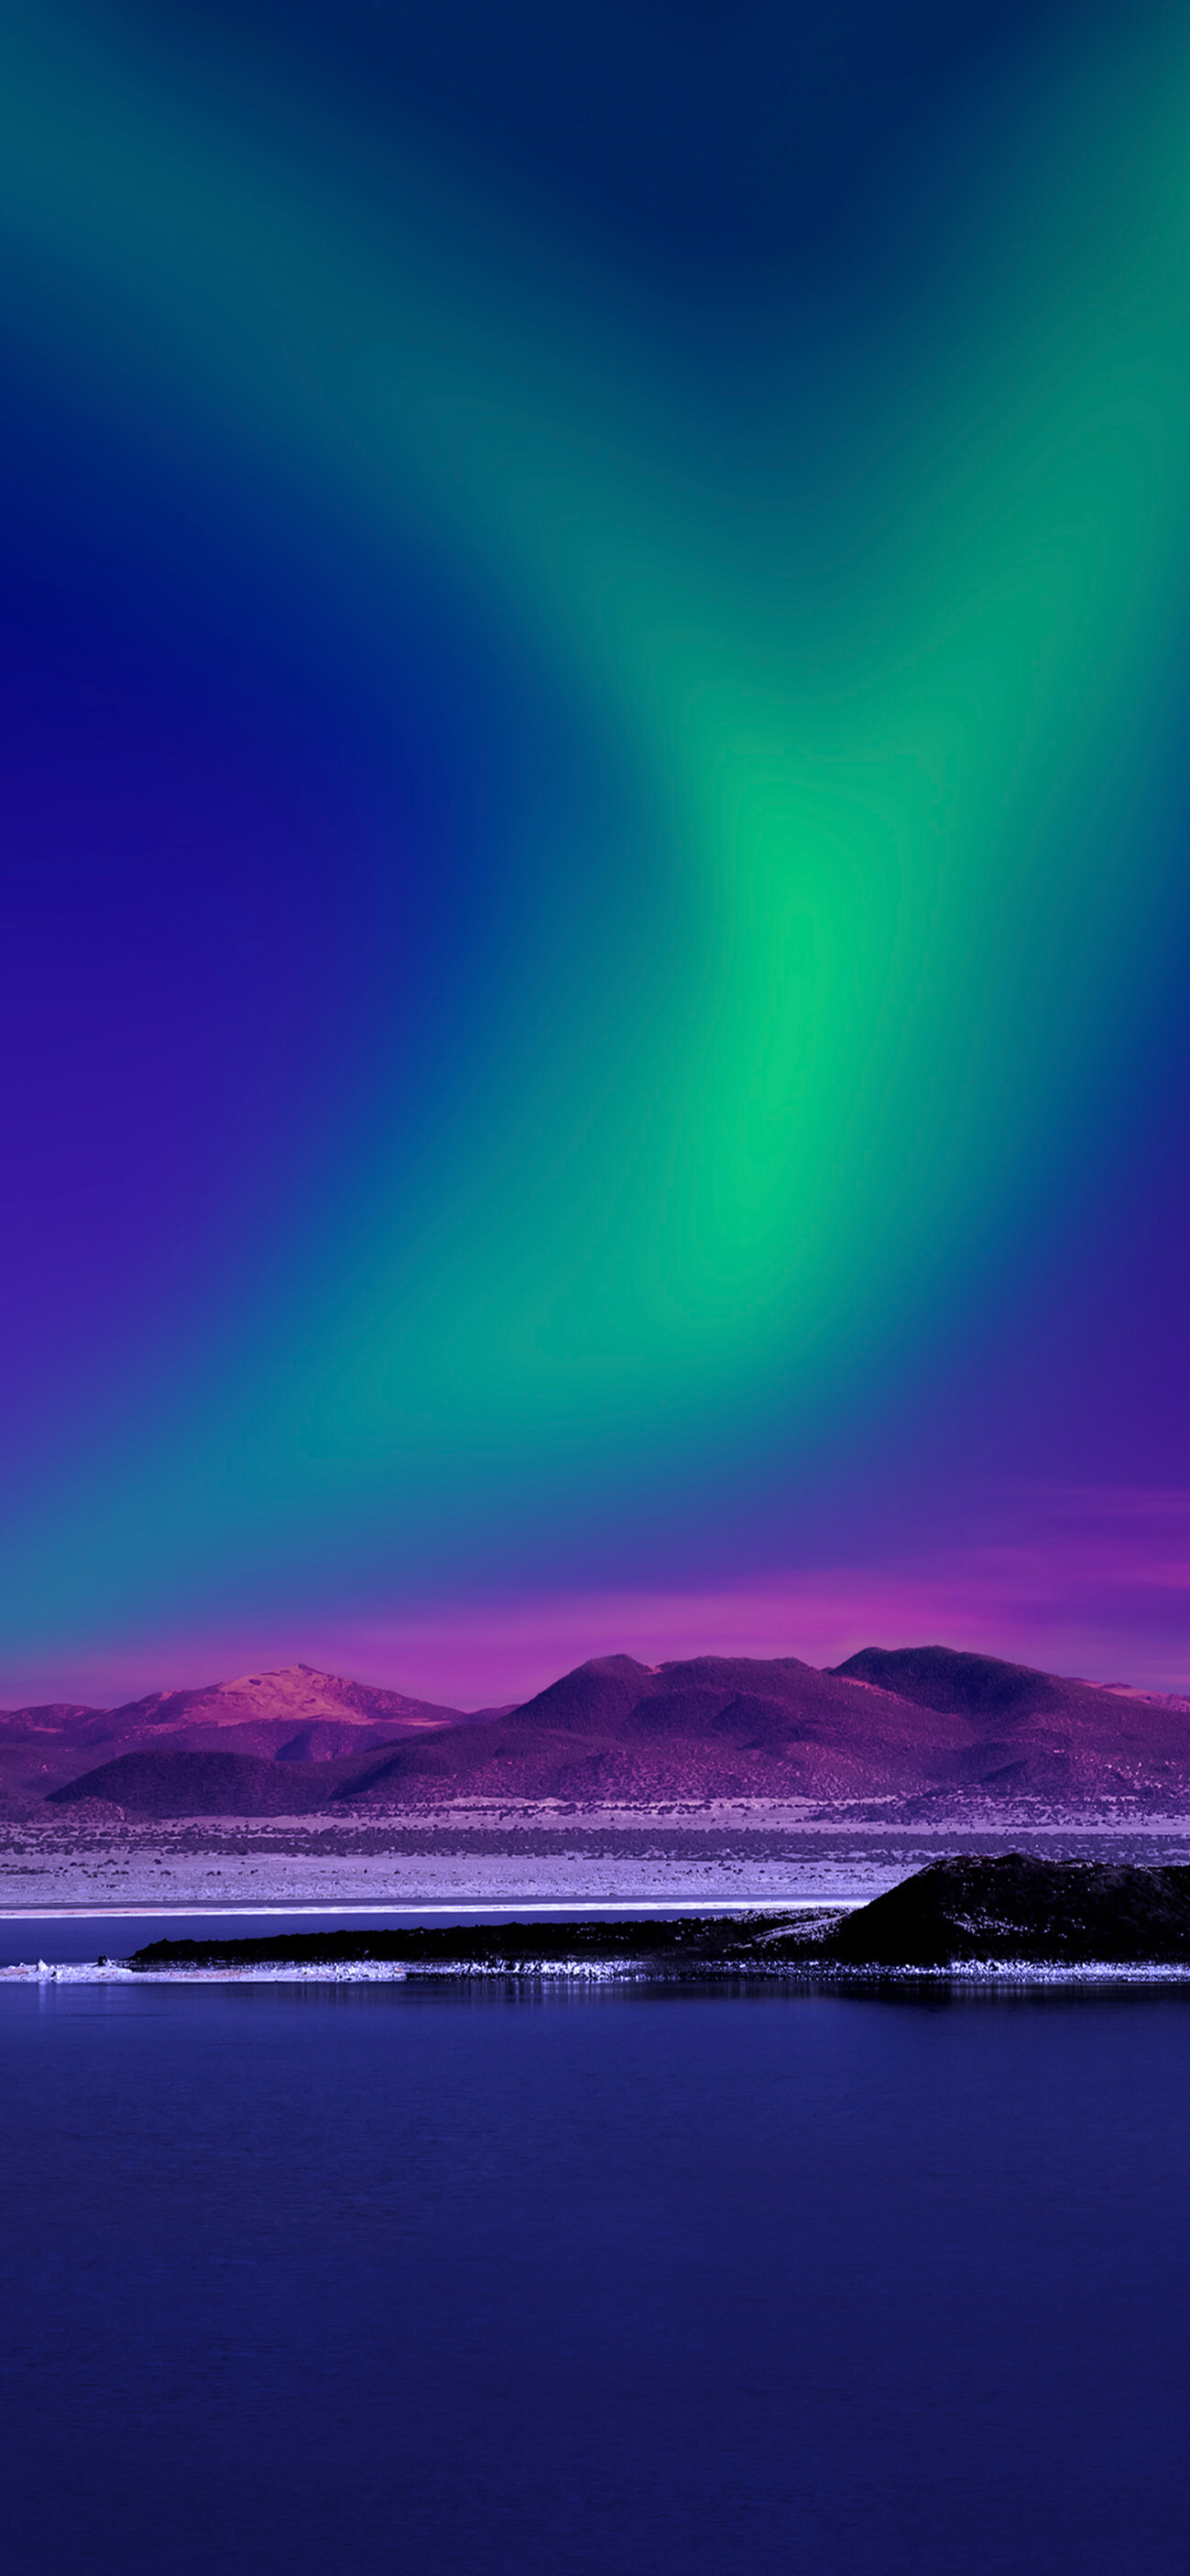 Northern Lights I Redd It Submitted By Sshaawnn To R Iwallpaper 0 Comments Original Phone Wallpaper Images Beautiful Wallpaper For Phone Northern Lights